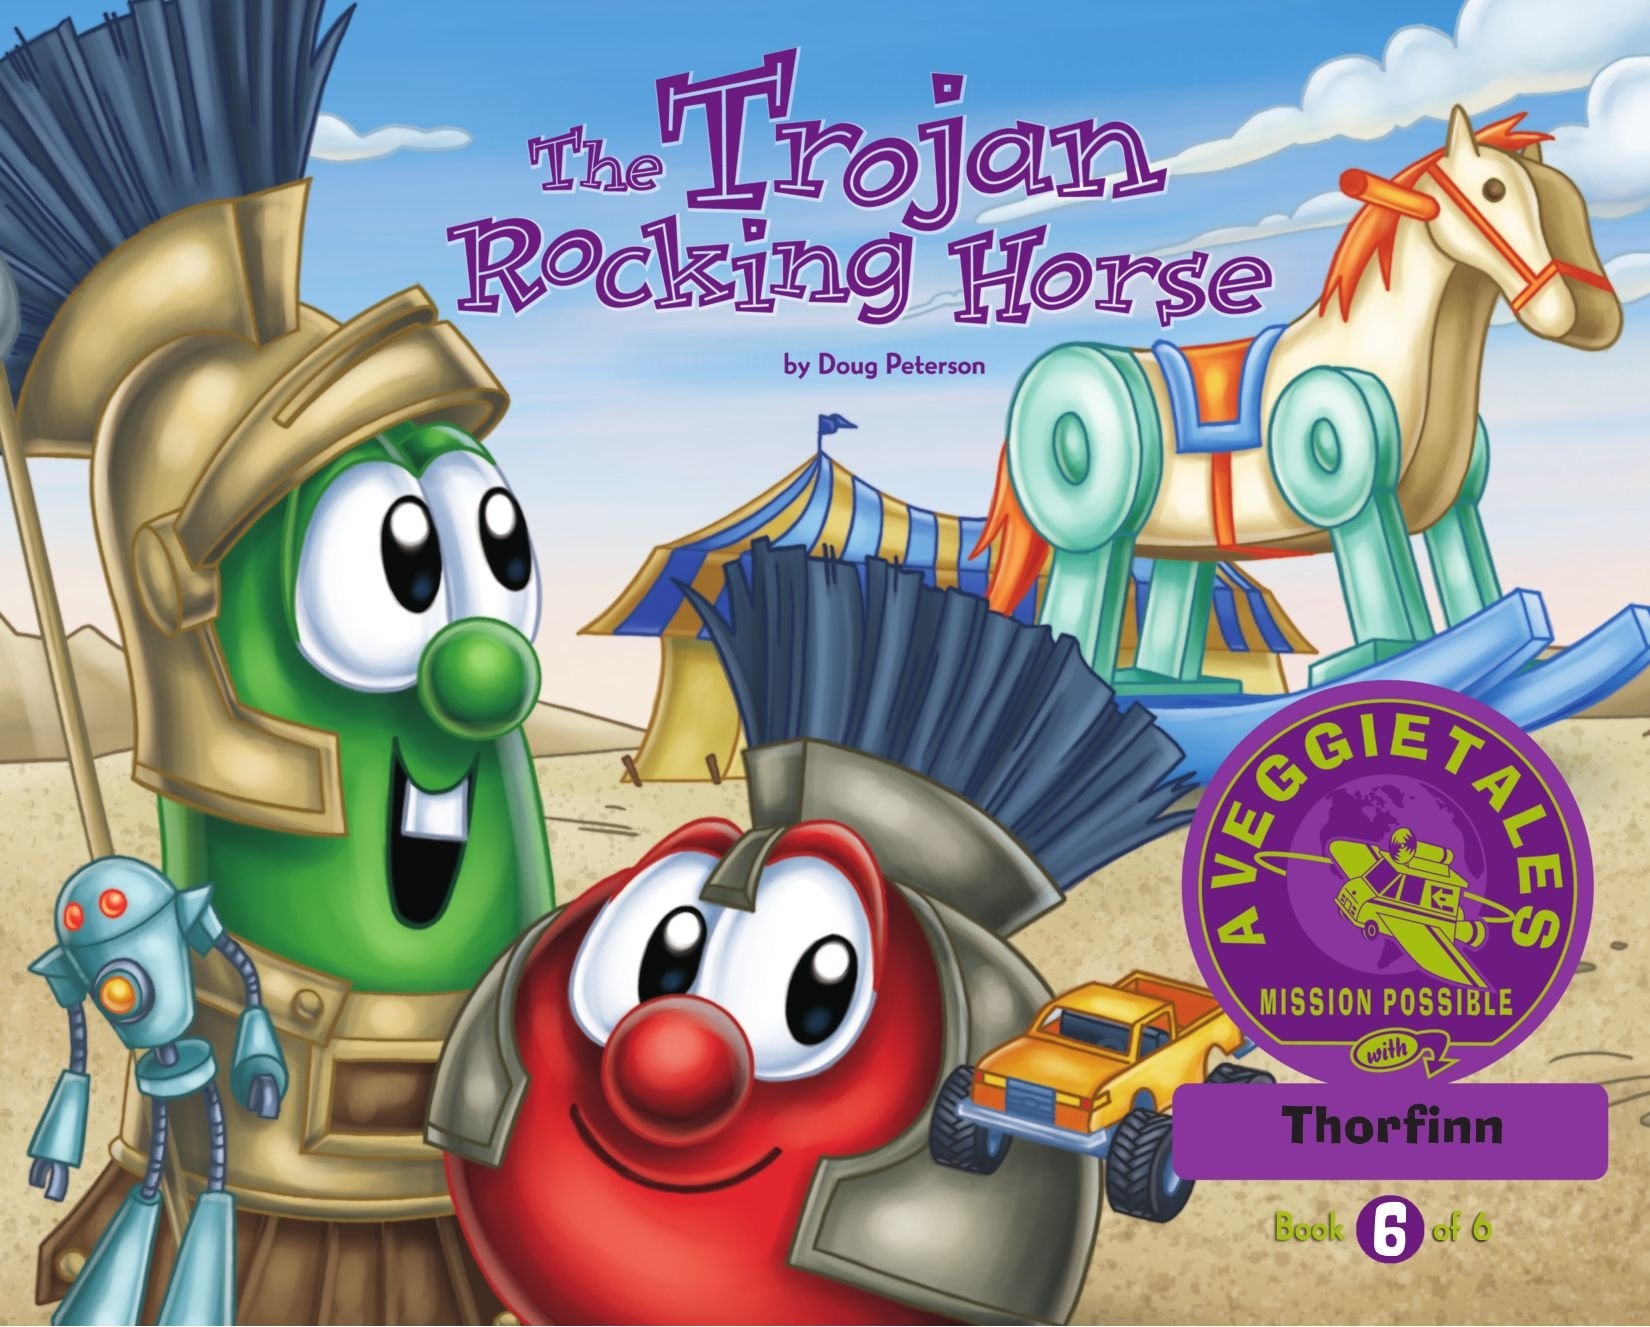 Download The Trojan Rocking Horse - VeggieTales Mission Possible Adventure Series #6: Personalized for Thorfinn (Boy) PDF